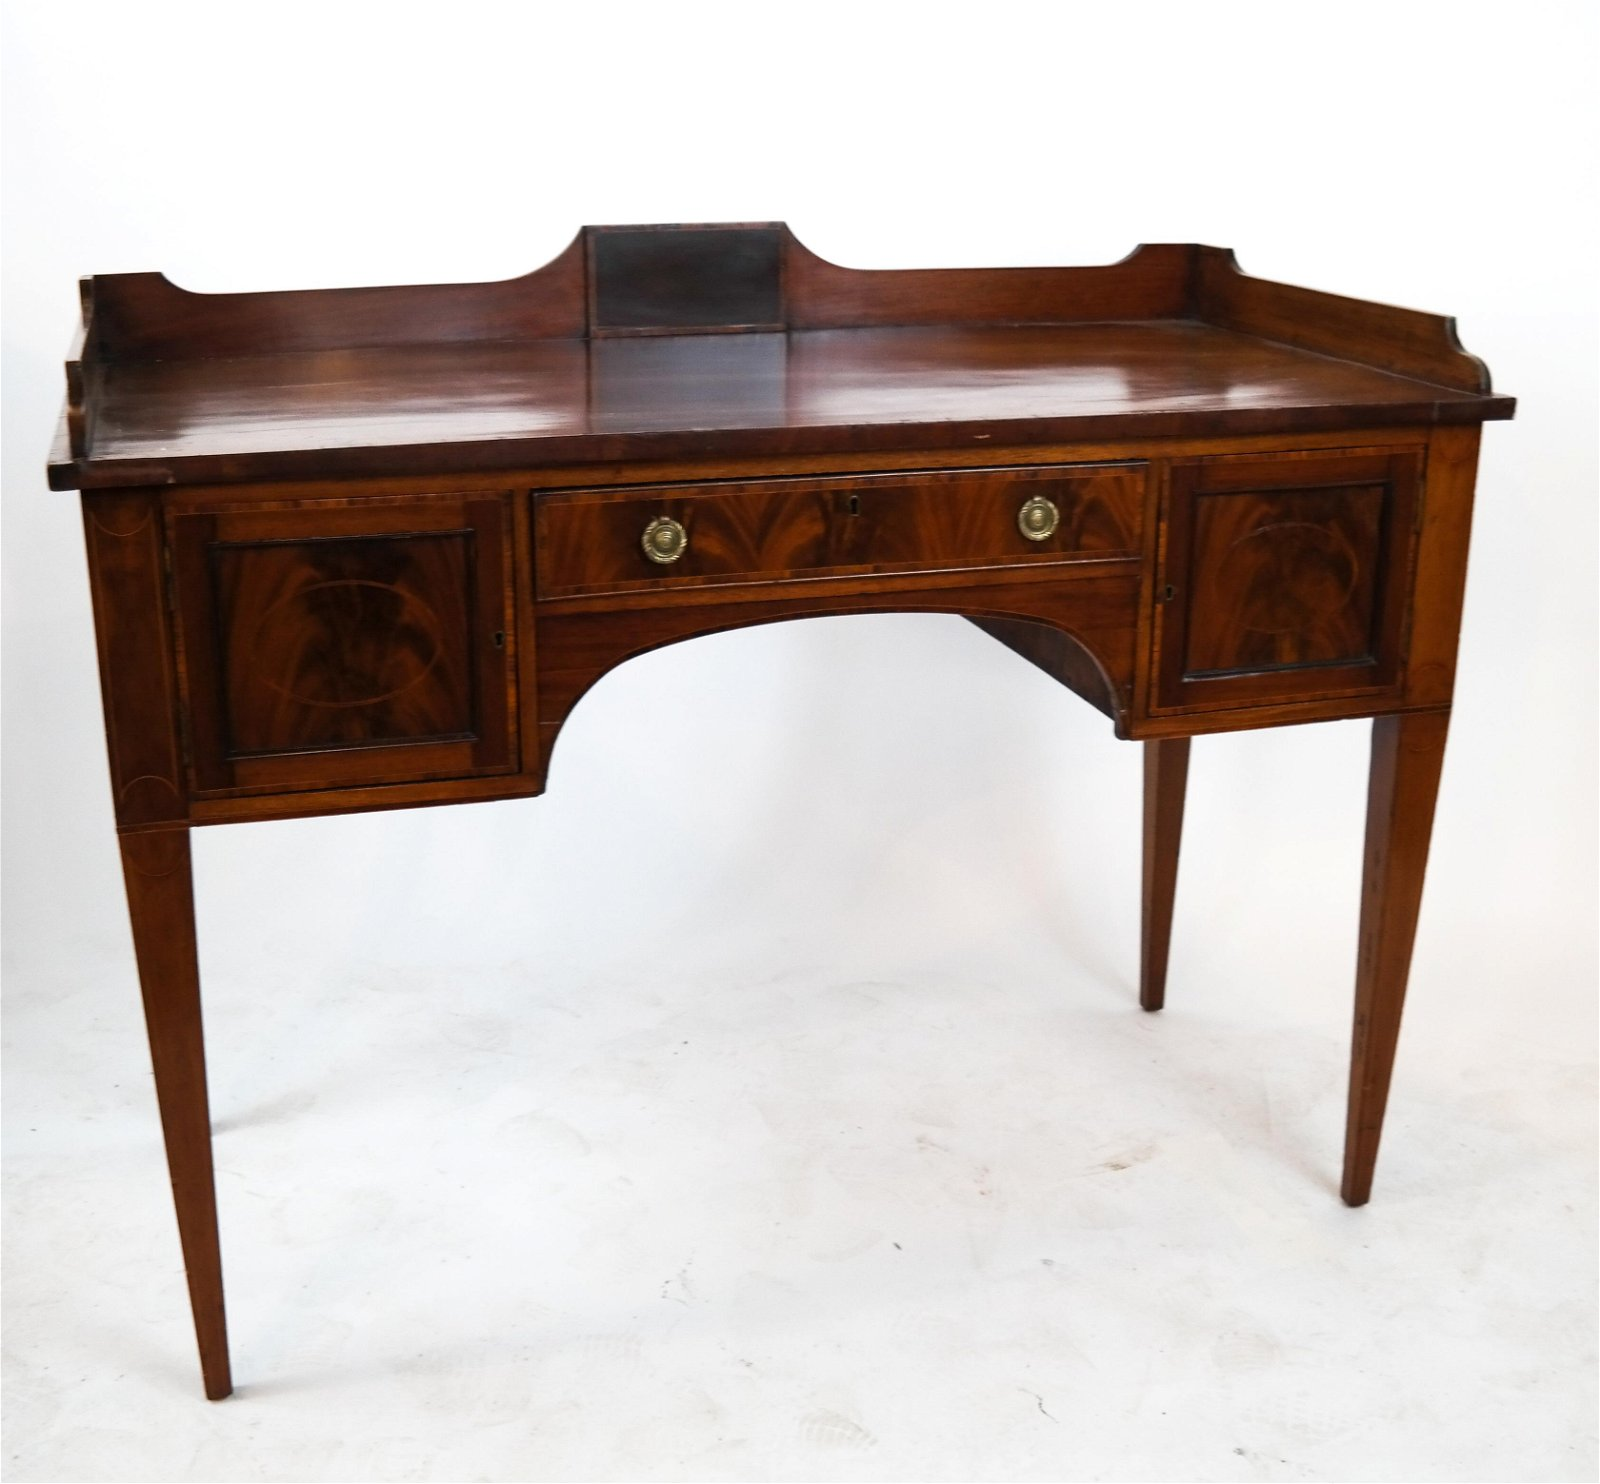 George III-Style Inlaid Mahogany Dressing Table